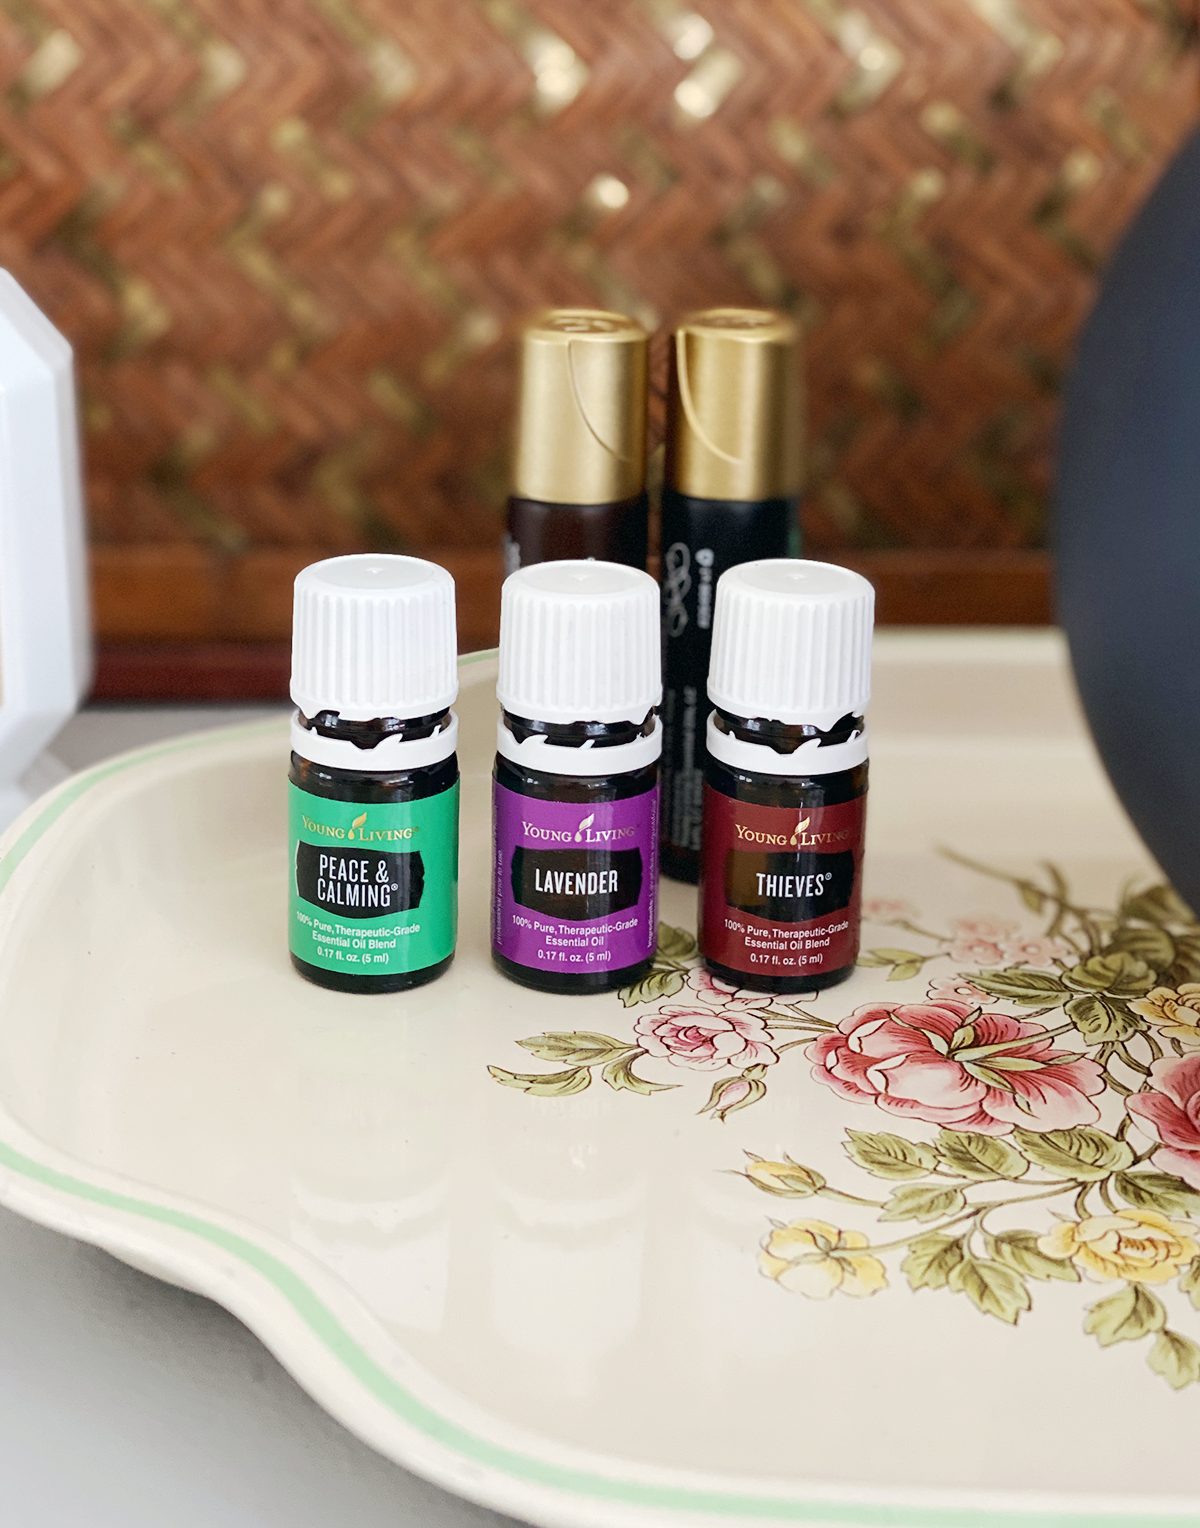 My three go to oils for diffusing in the bedroom